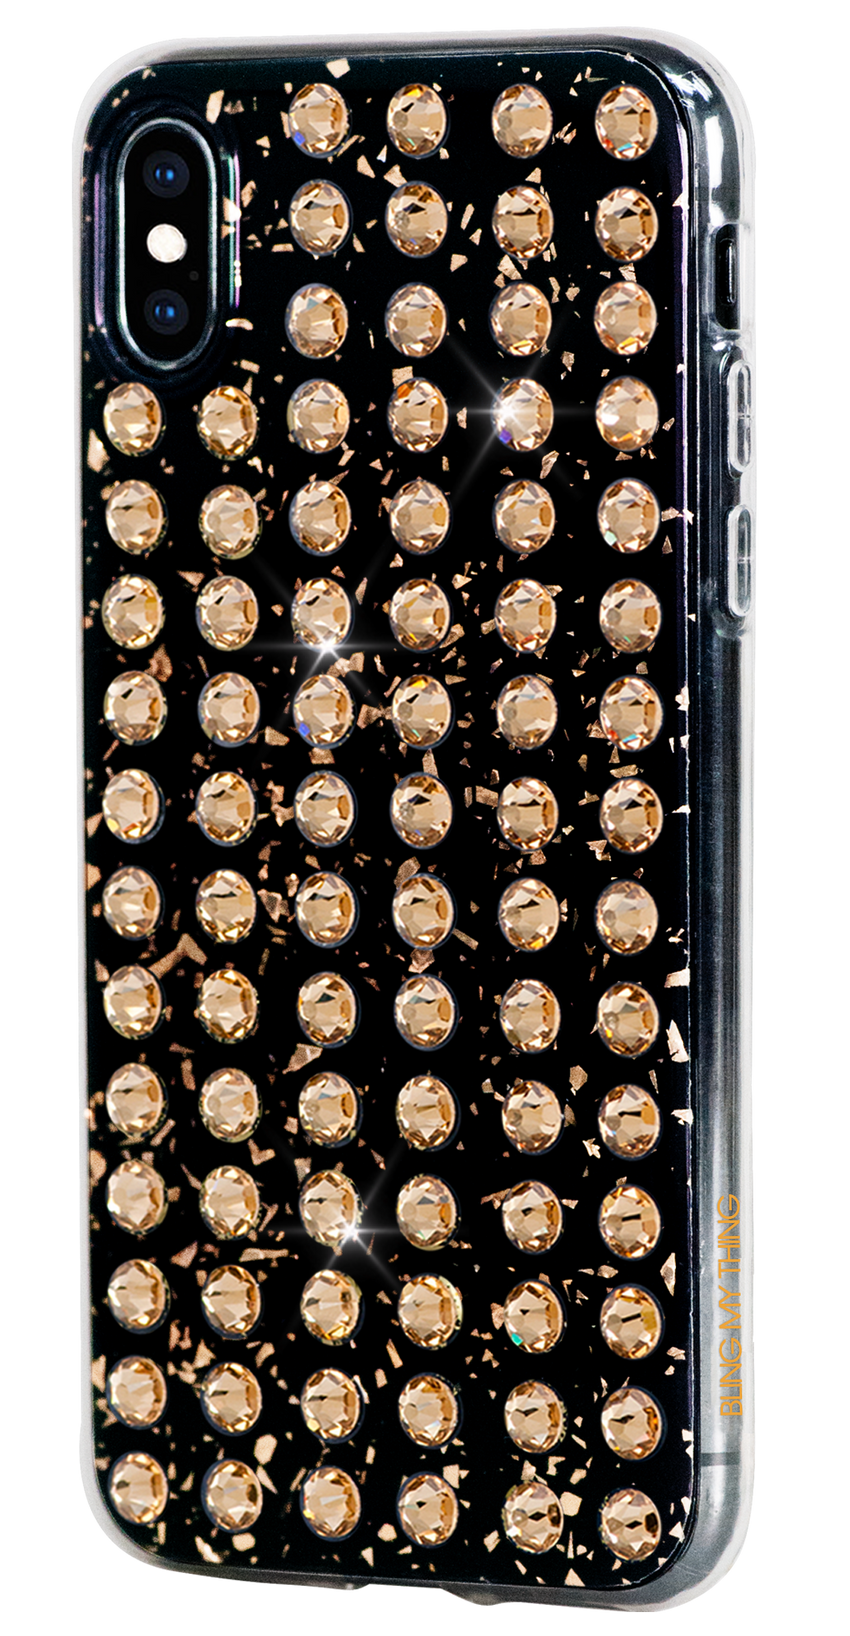 EXTRAVAGANZA ᛫ BLACK GALAXY with 3D gold glitter for iPhone XS Max - Bling My Thing